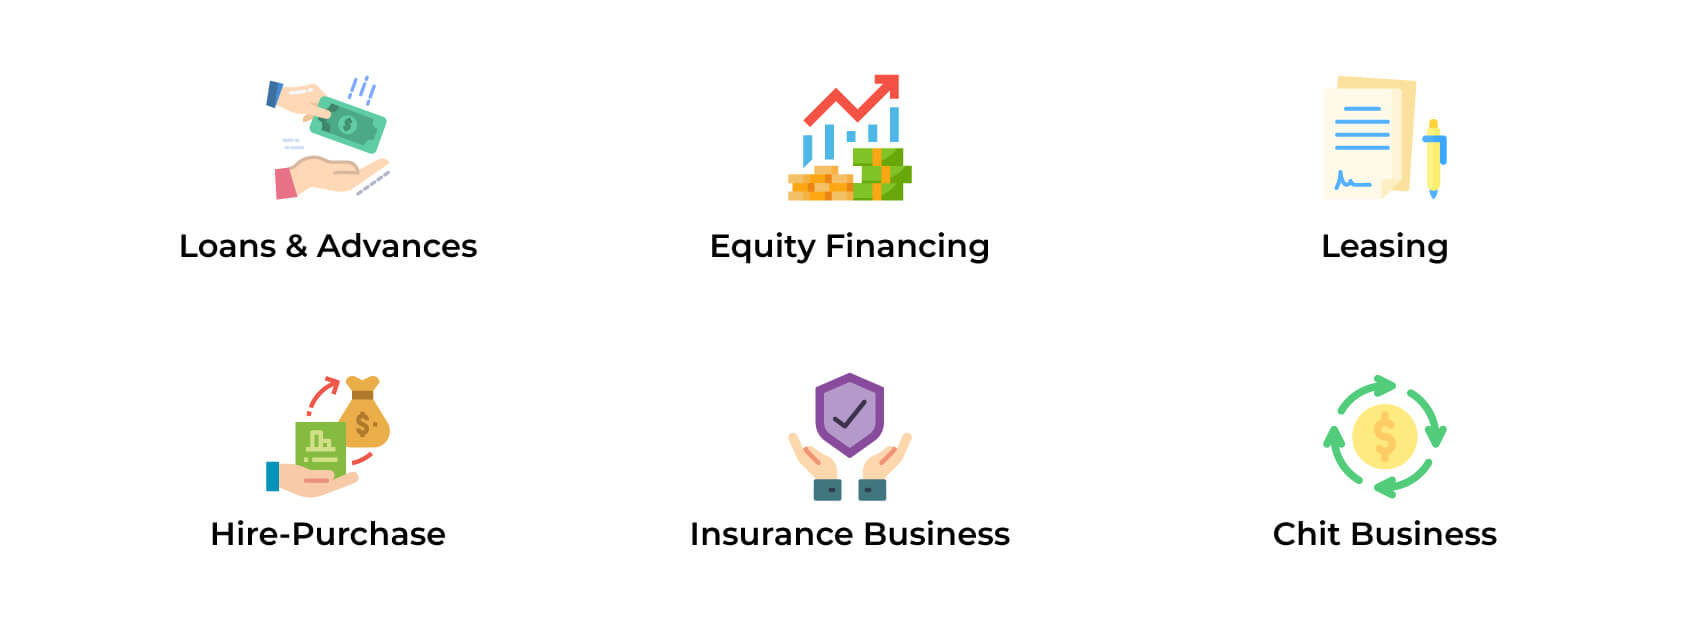 Here are the broad categories of financial services offered by NBFCs.